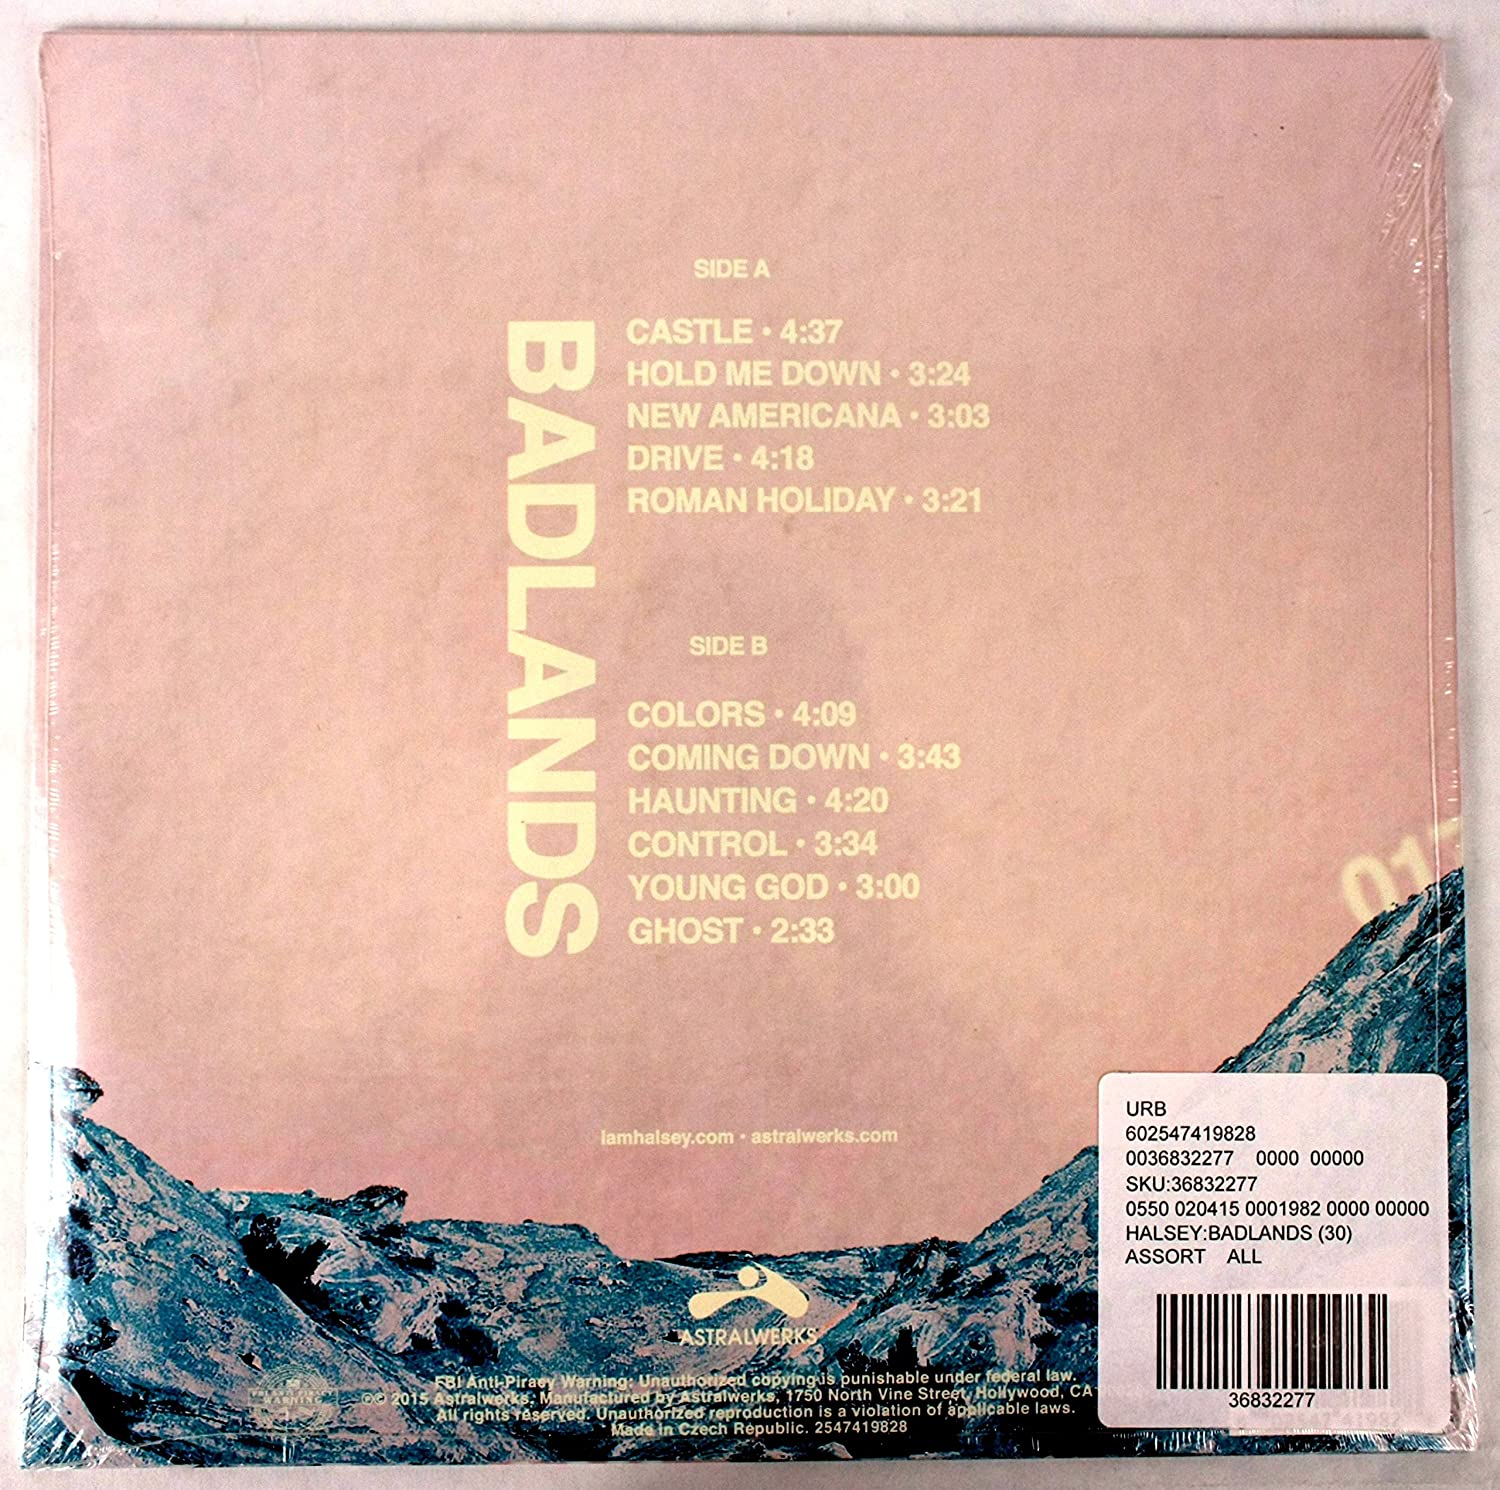 BADLANDS - Alternative Album Artwork Special Limited Edition